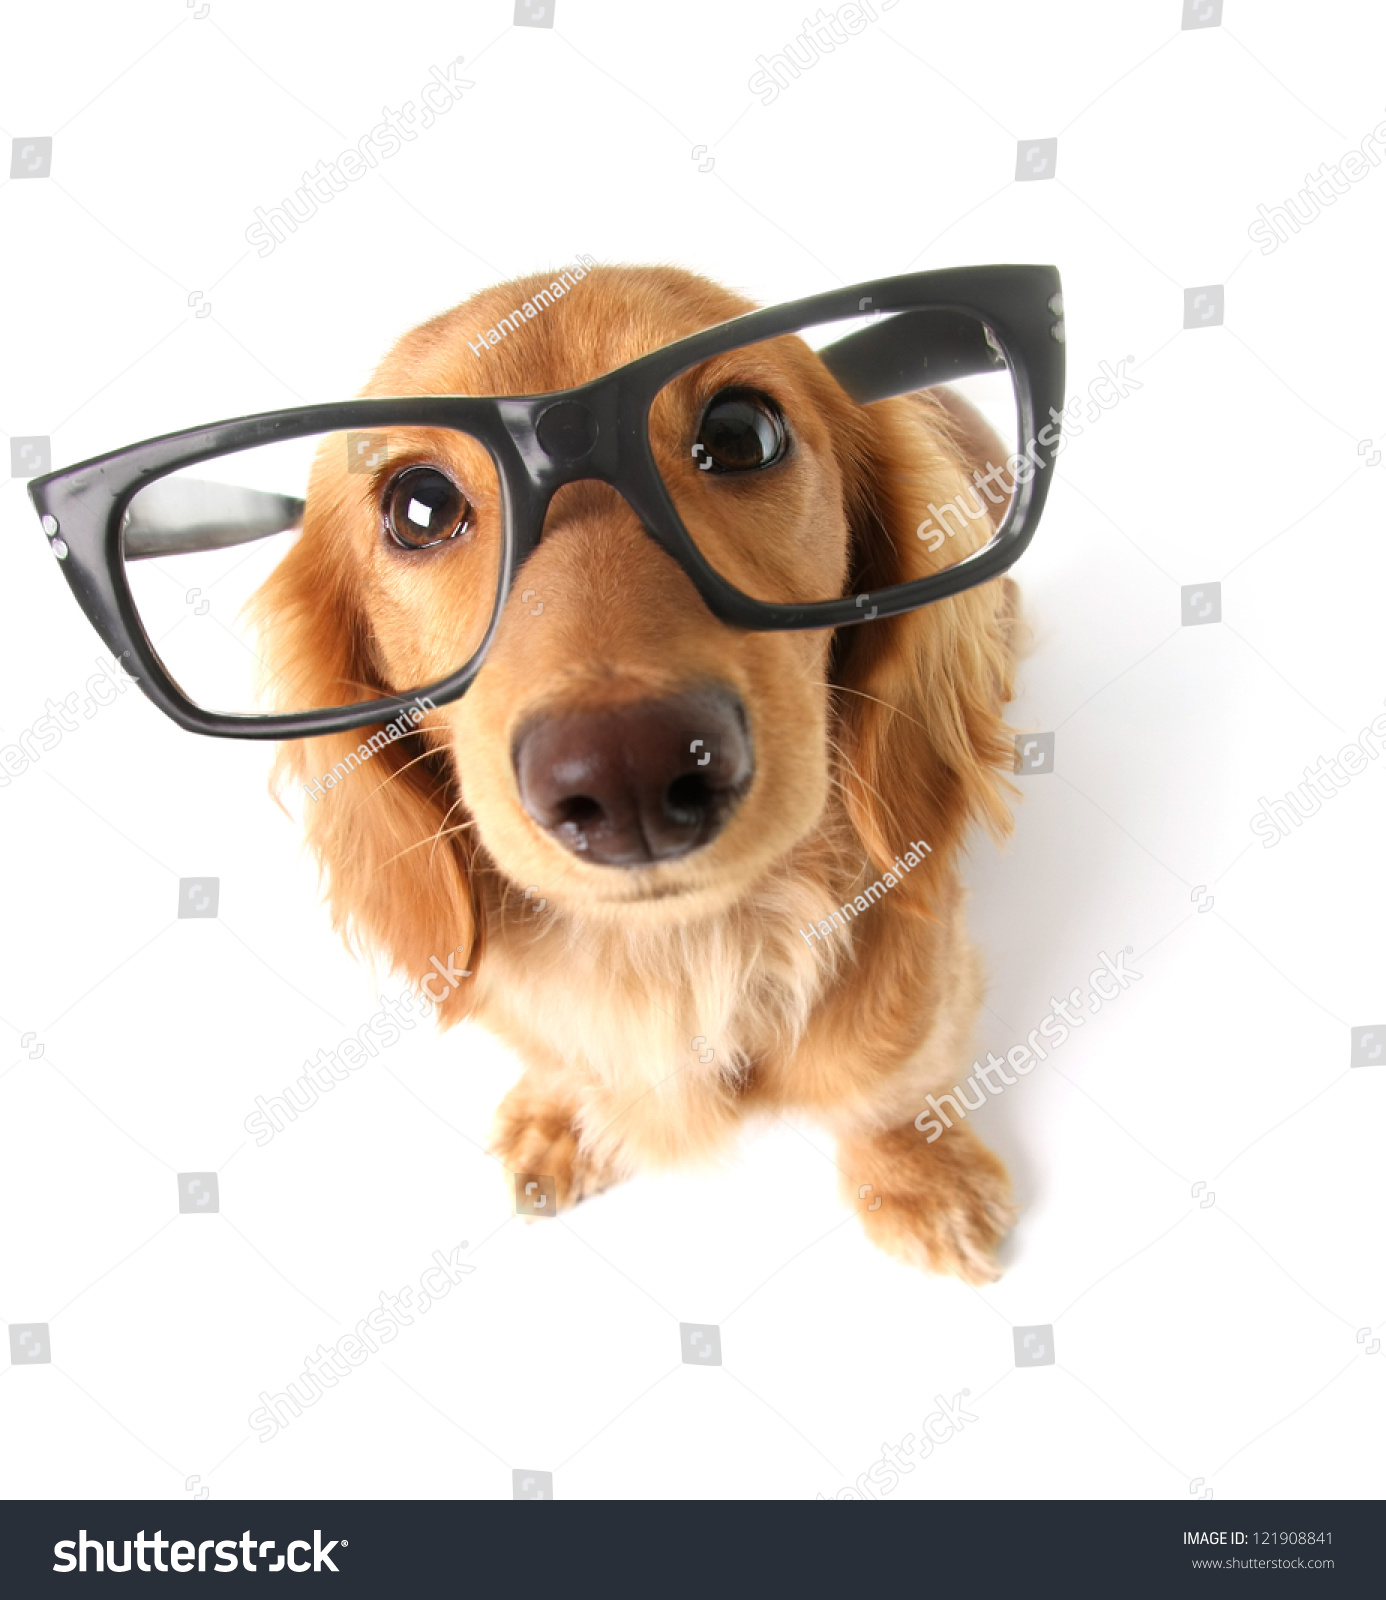 Funny Little Dachshund Wearing Glasses Distorted Stock Photo Edit Now 121908841,Hacks Space Saving Ideas For Small Apartments